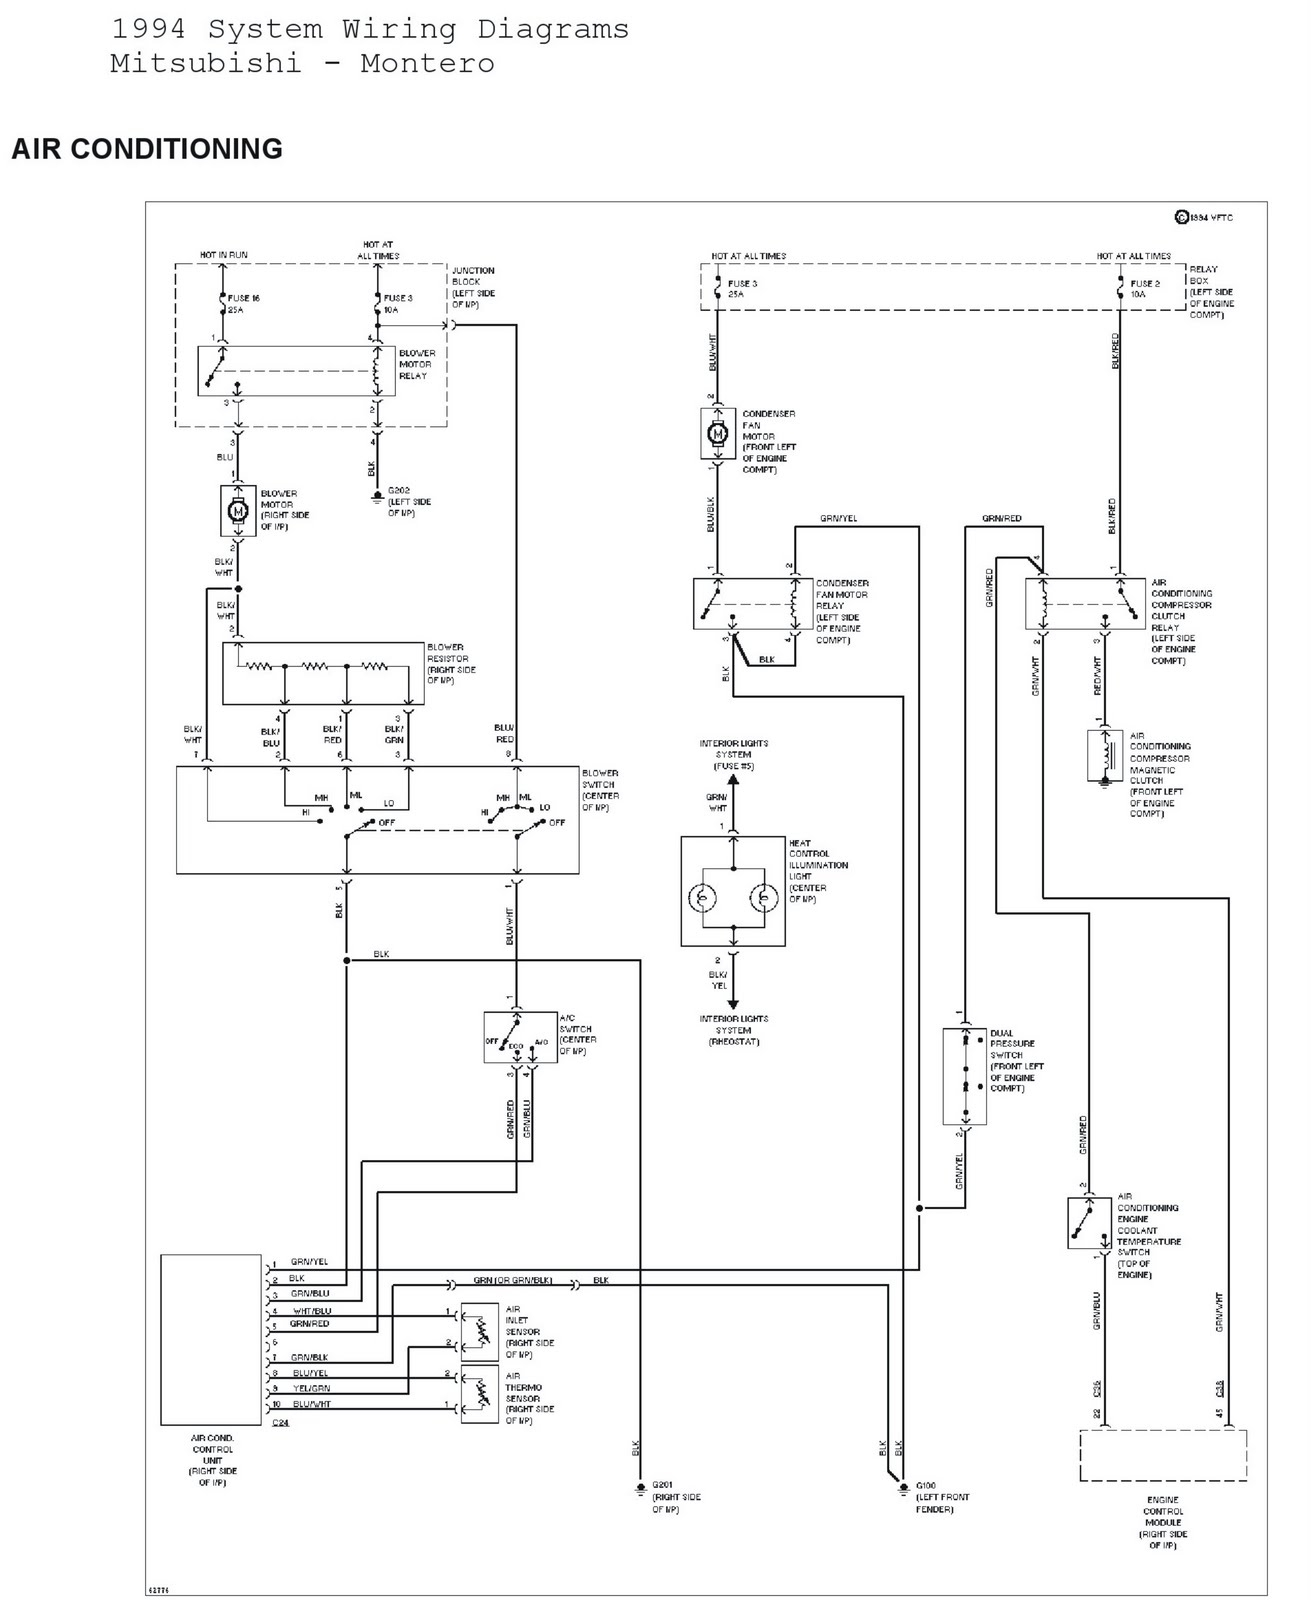 1997 Mitsubishi Montero Electrical Wiring Diagrams